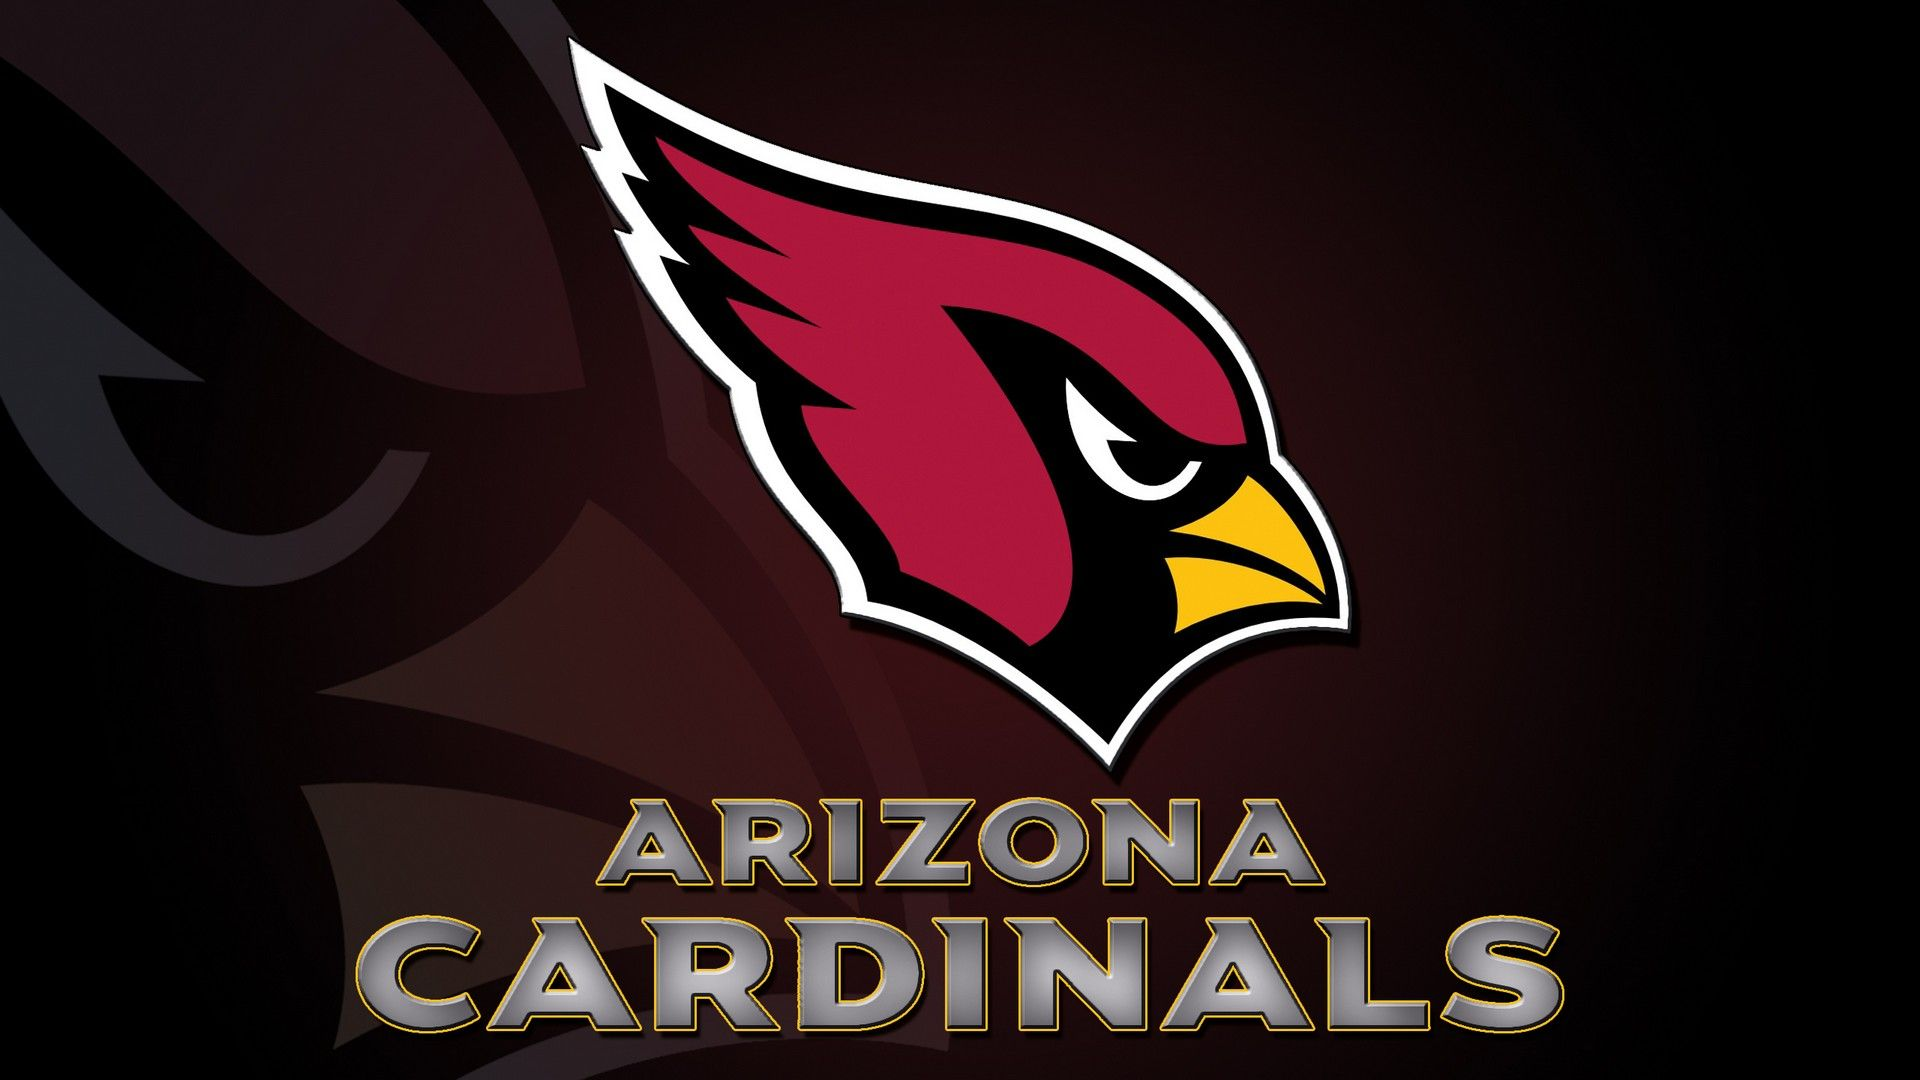 Arizona Cardinals Wallpaper HD Cardinals wallpaper